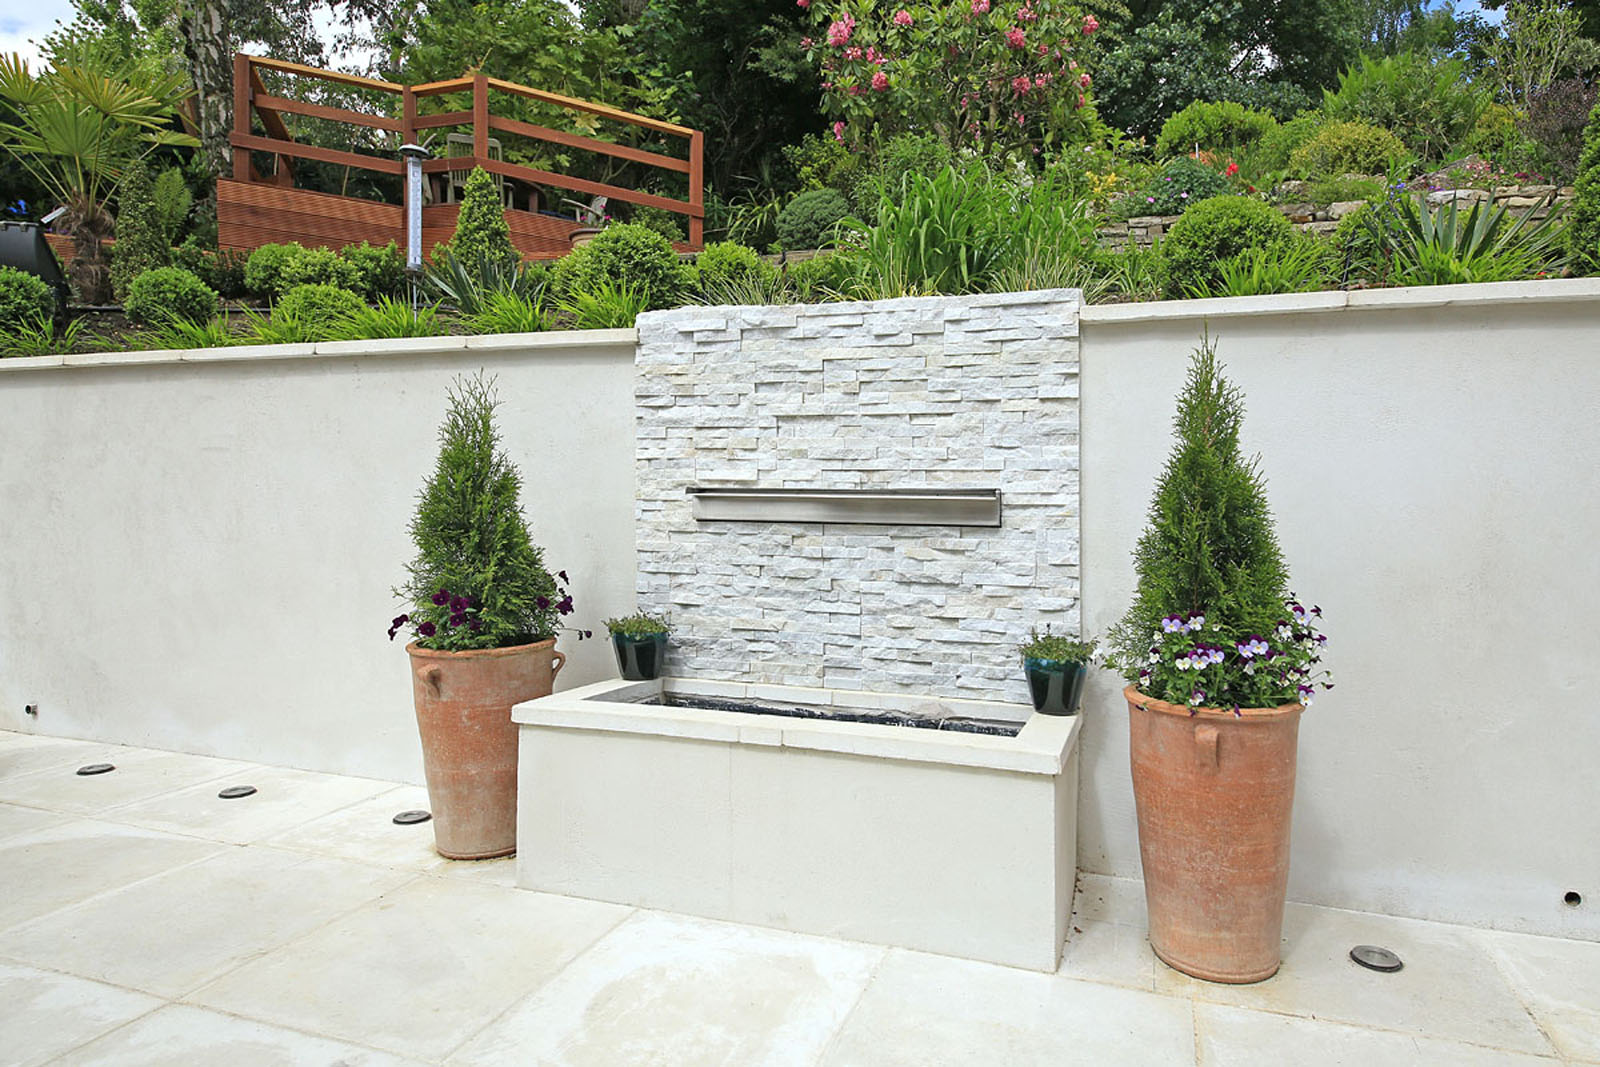 The Garden Was Completely Cleared And Floor Paved With Designer White Paving Slabs Complete Water Feature A Decked Seating Area